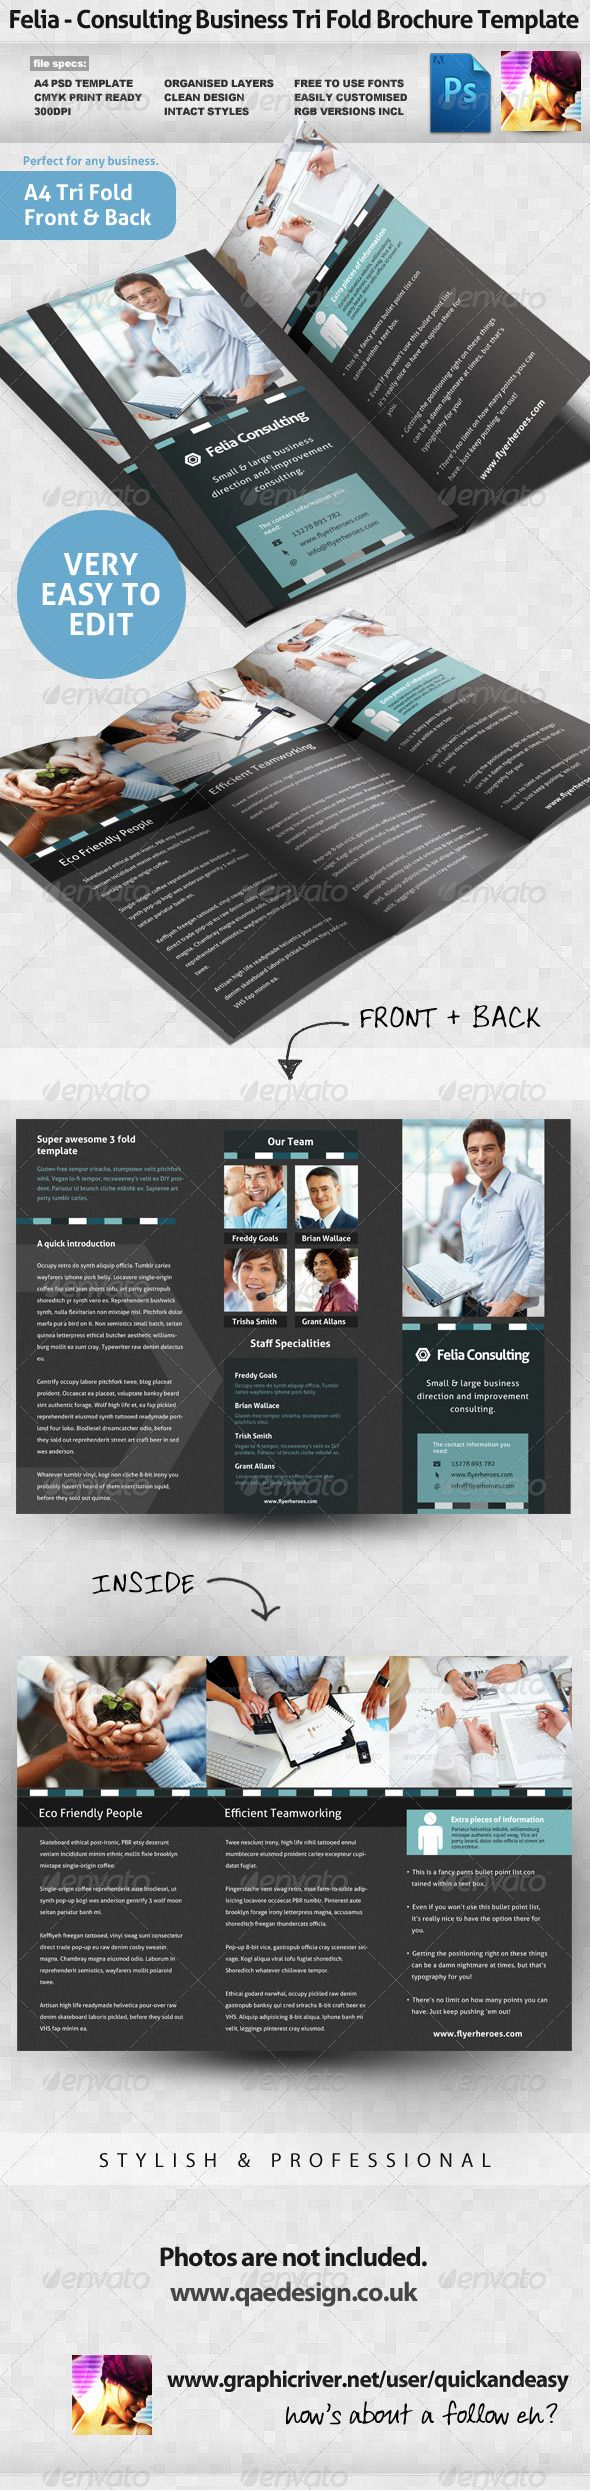 Felia - Consulting 3 Fold Brochure Template  #GraphicRiver                   Consulting 3-fold Brochure Template  Felia, A clean, crisp, high impact, highly editable, super high quality Small Business / Corporate / Consulting Photoshop PSD 3 -Fold Brochure Template Layout, perfect for any small business or product themed tri-fold brochure.   Highly editable PSD brochure template, very easily customise to make it your own in seconds!   What does this file ship with?   Consulting 3-fold…